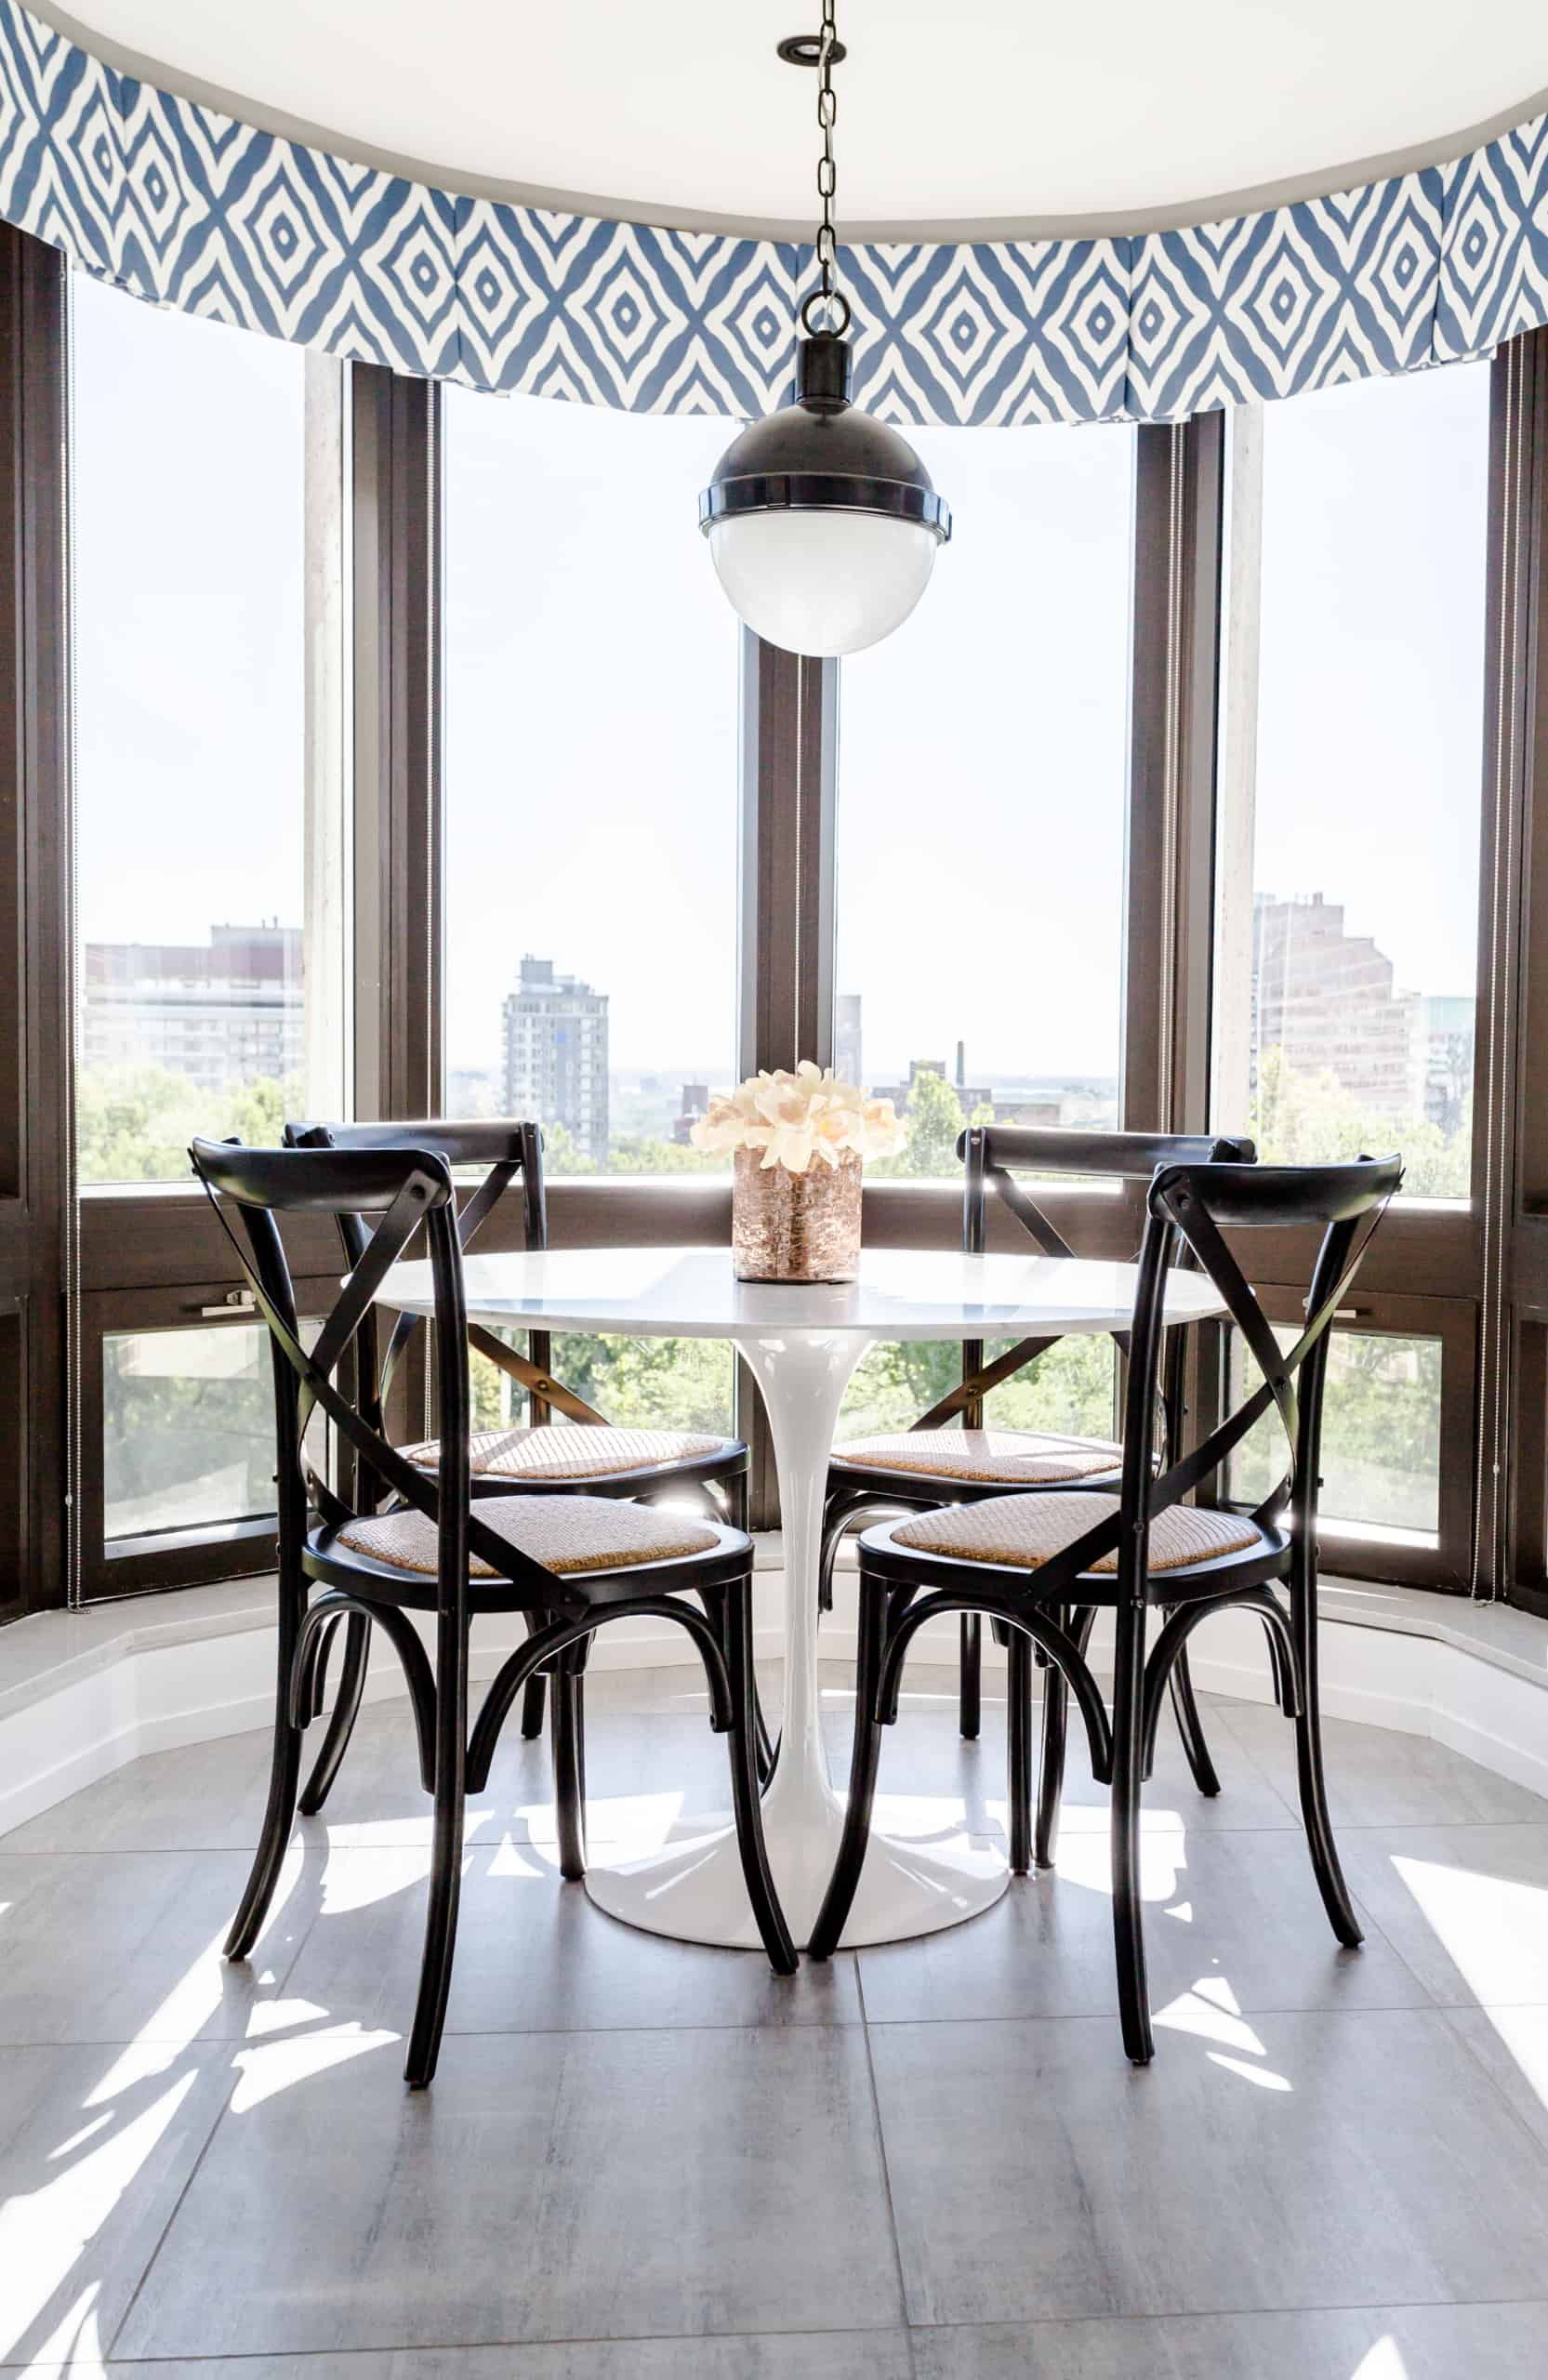 Small dining room with windows surrounding it